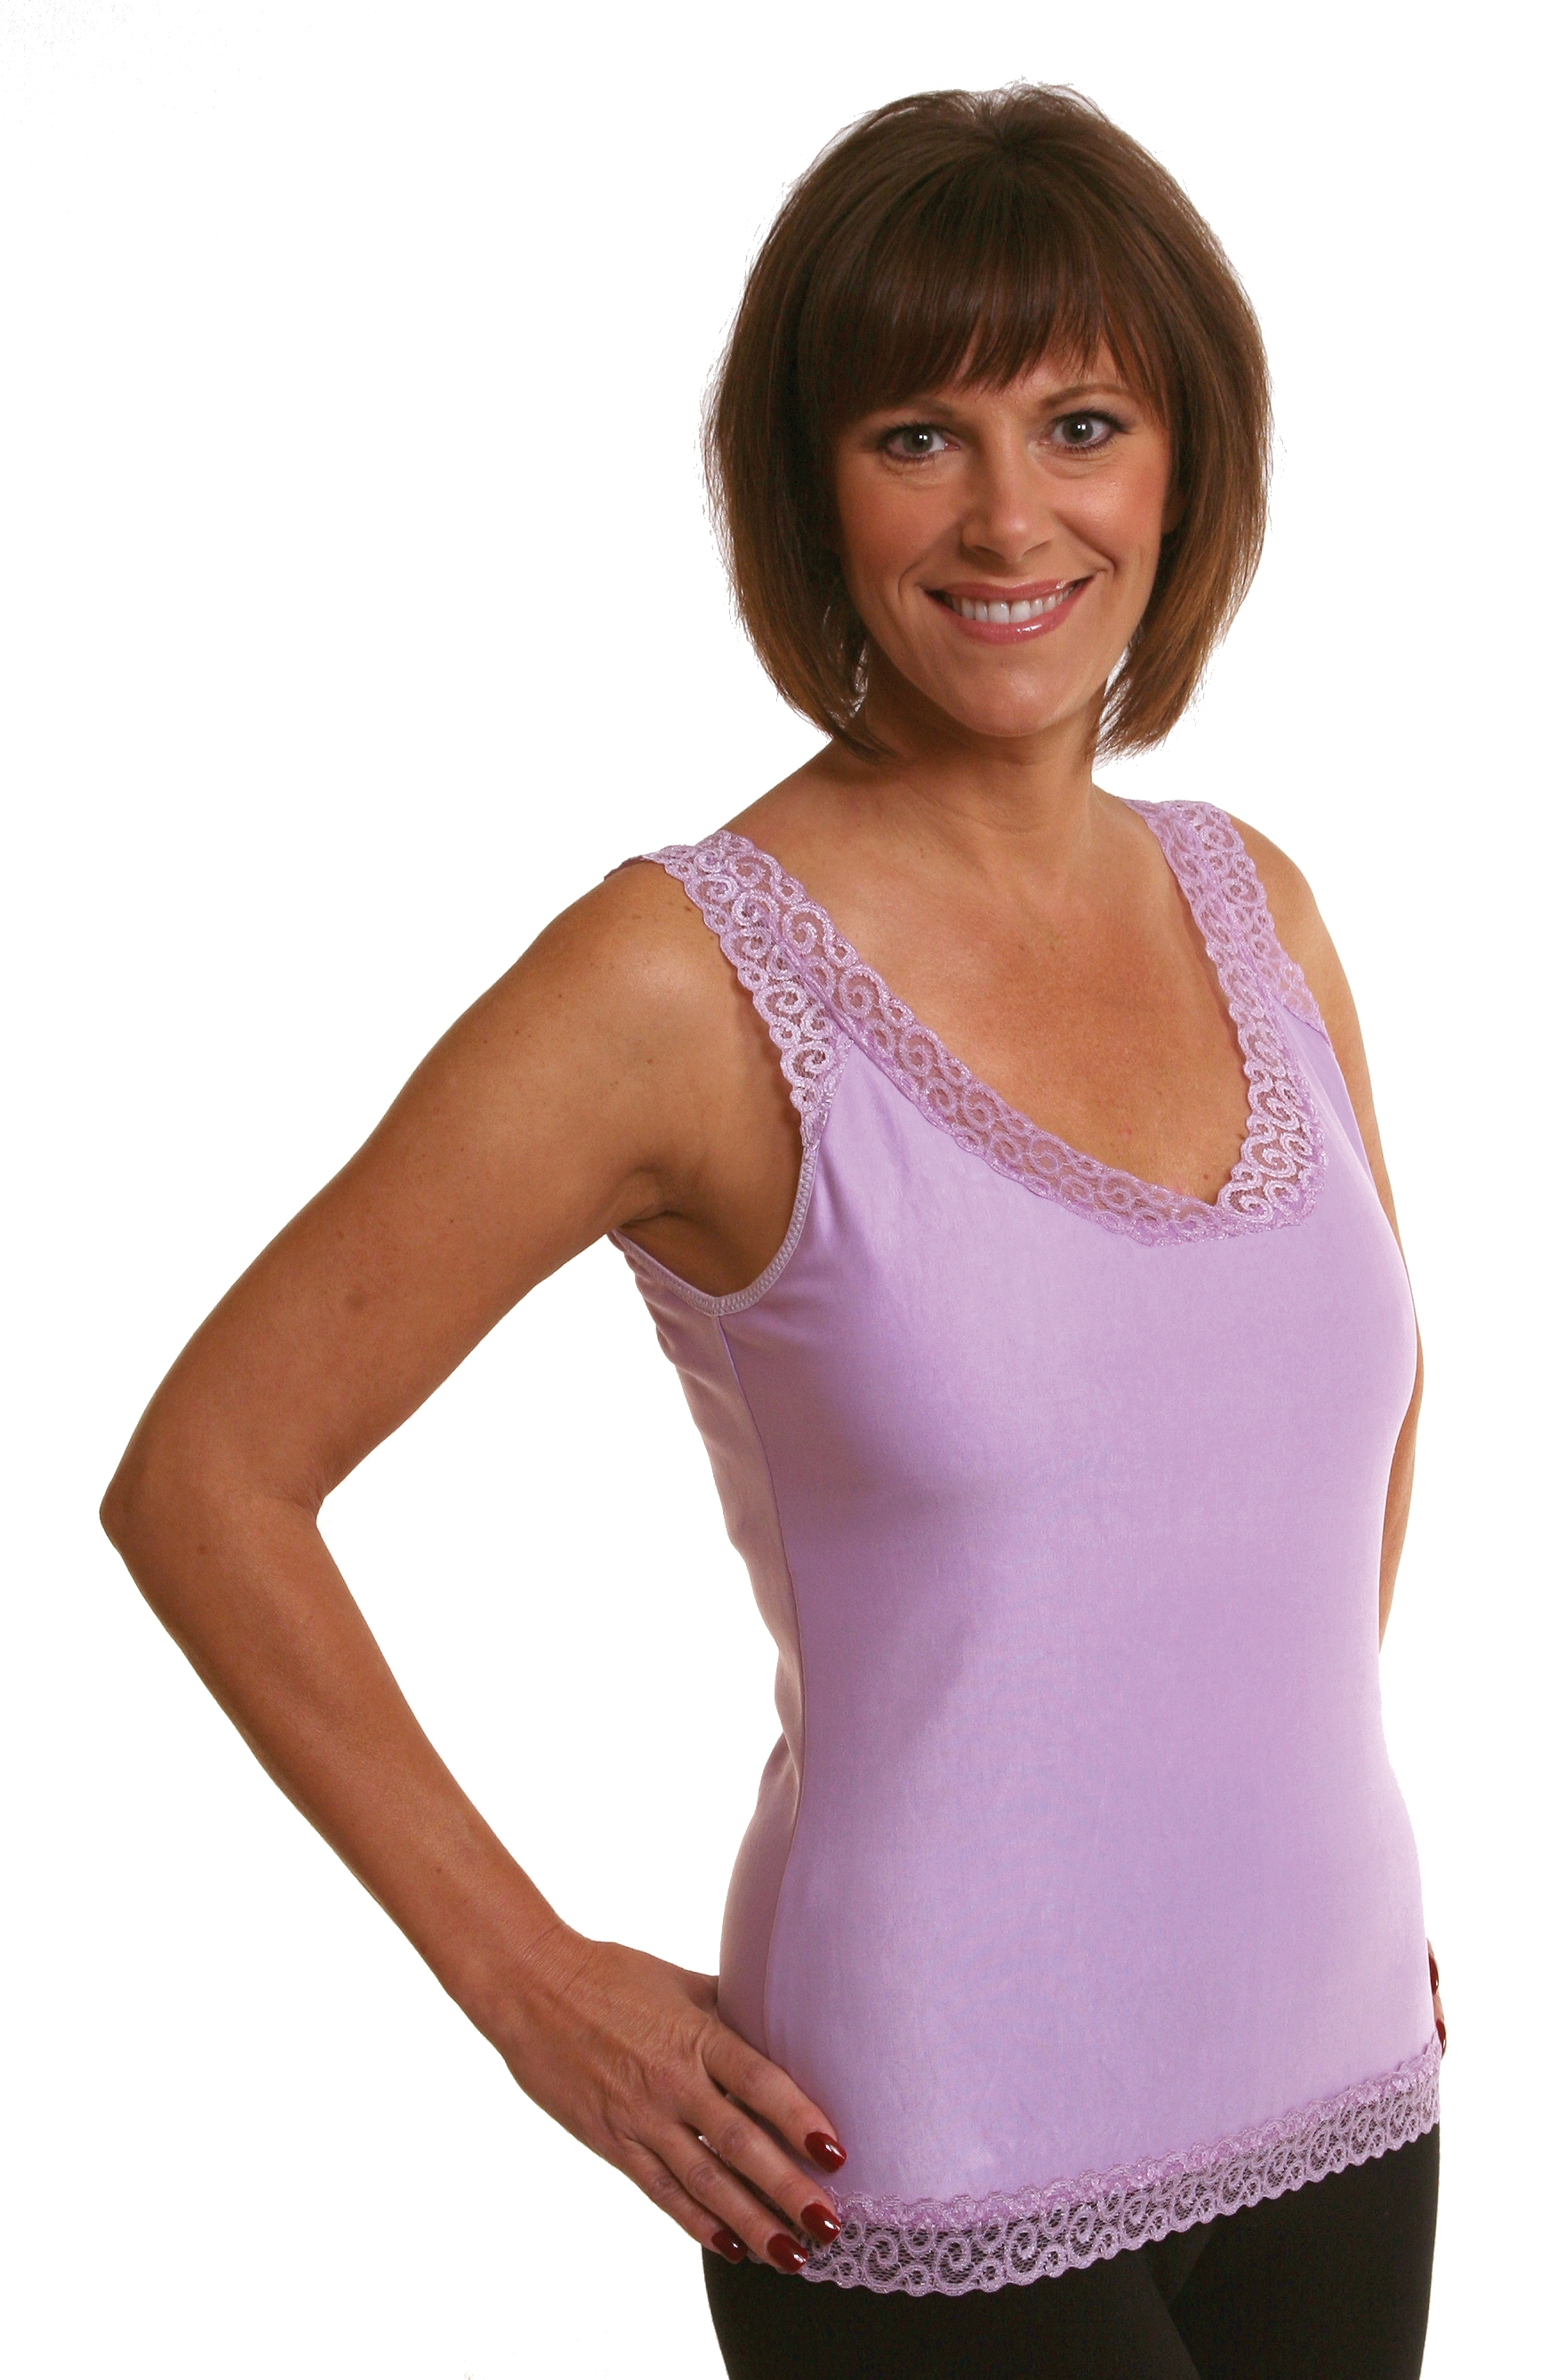 Wear Ease Claire Post-Mastectomy, Breast Surgery Camisole